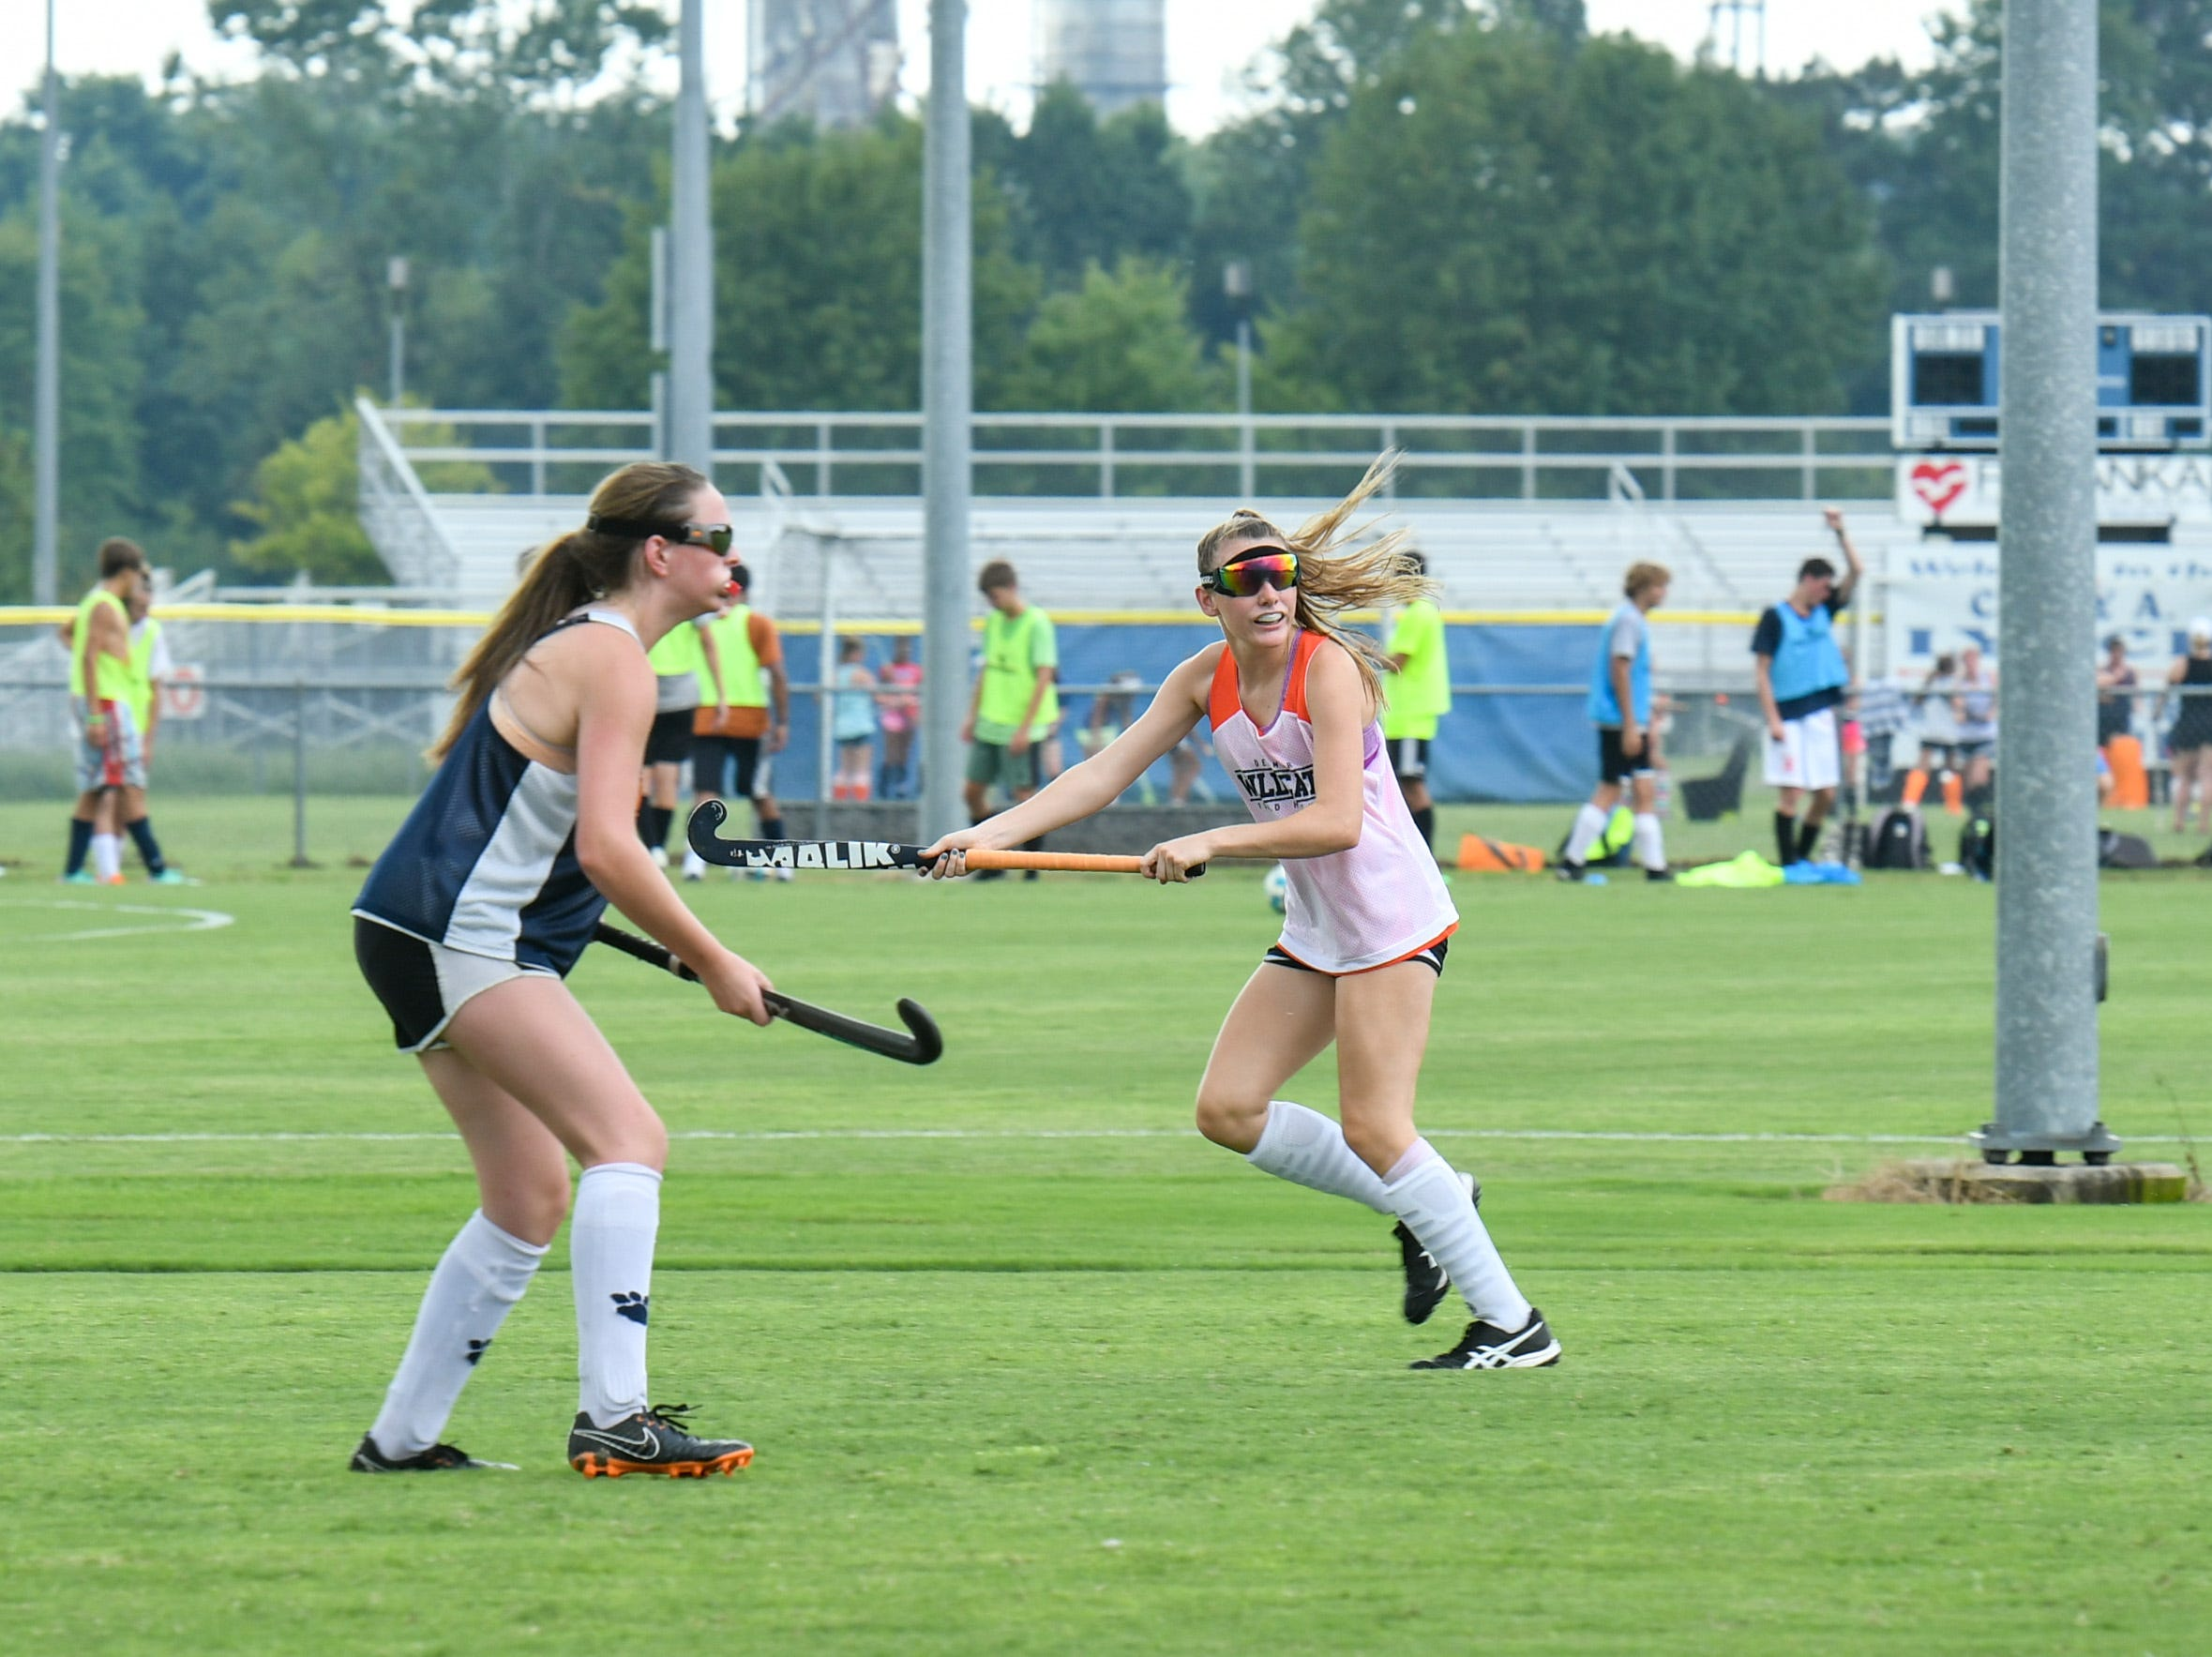 Senior Hailey Bitters (right) calls for the ball during a scrimmage at Delmar field hockey practice on Wednesday, Sept. 5.